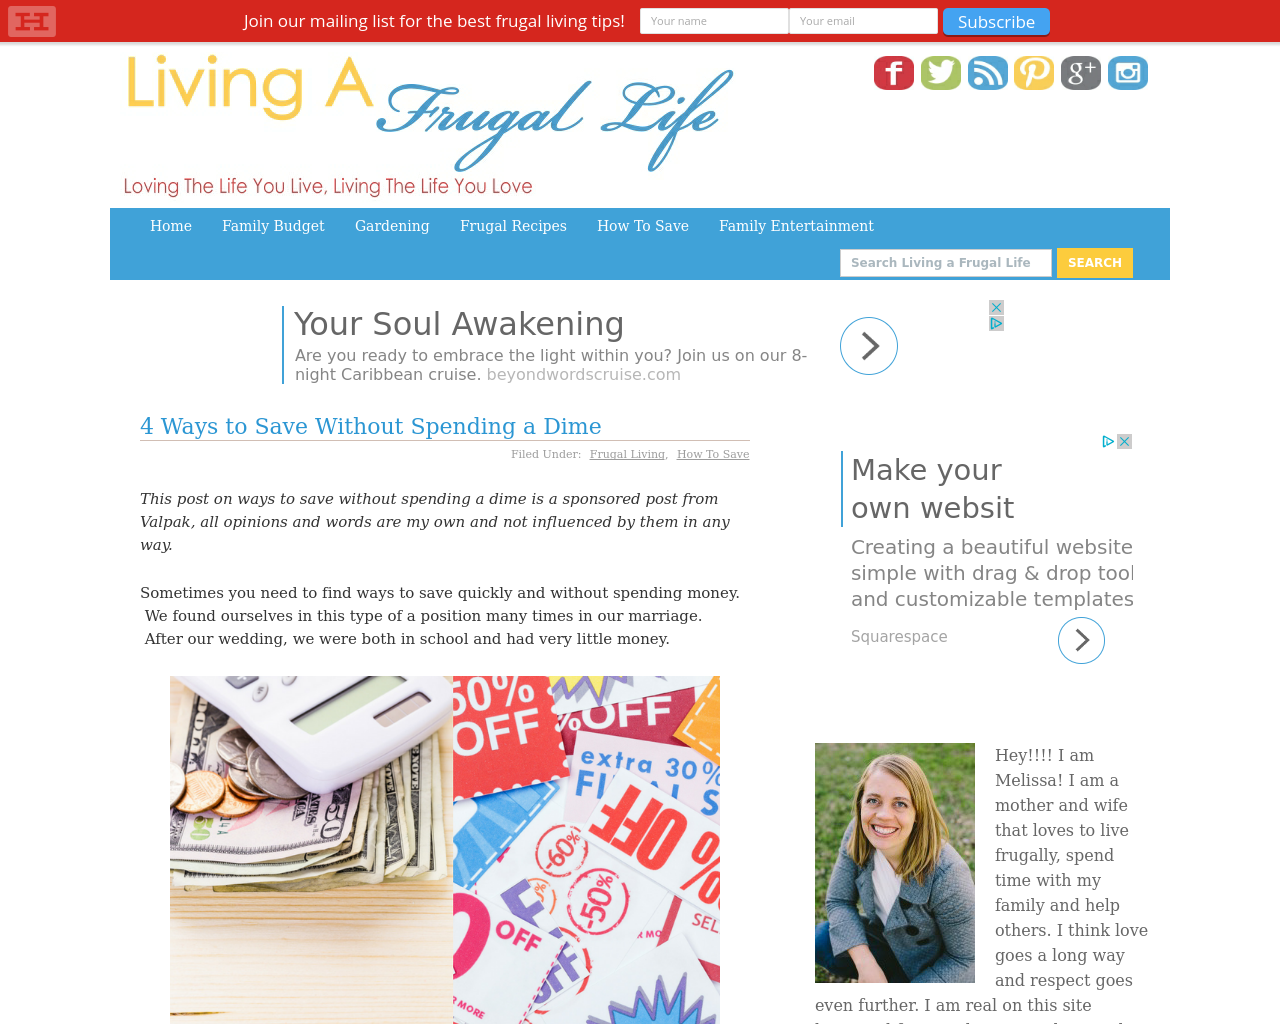 Living-A-Frugal-Life-Advertising-Reviews-Pricing